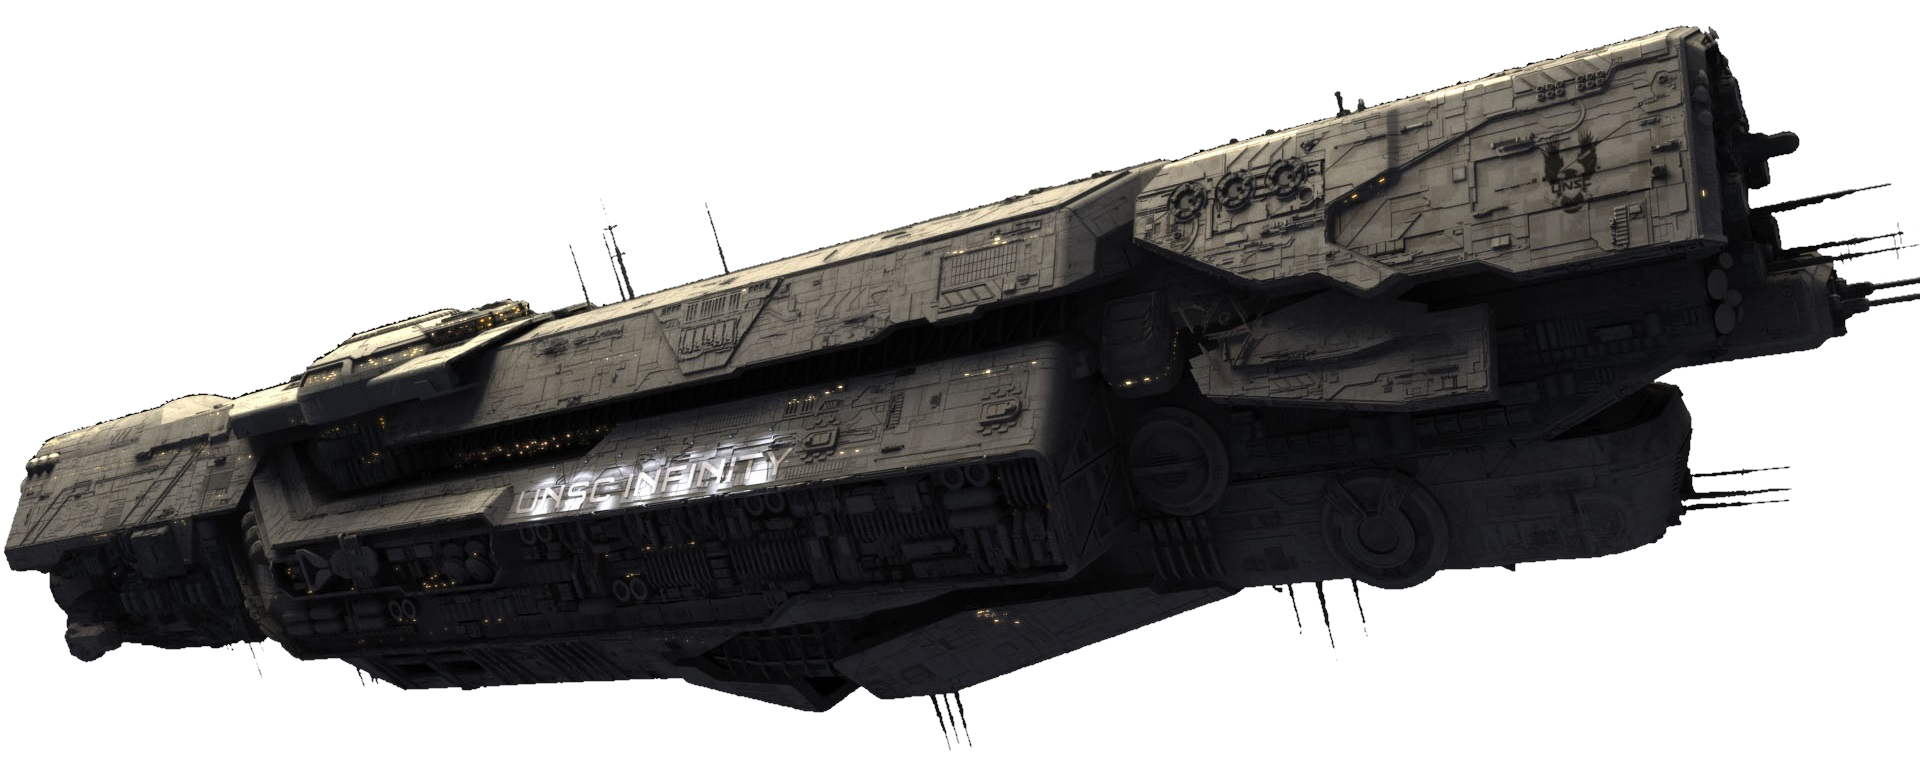 infinity class supercarrier halo nation fandom powered by wikia